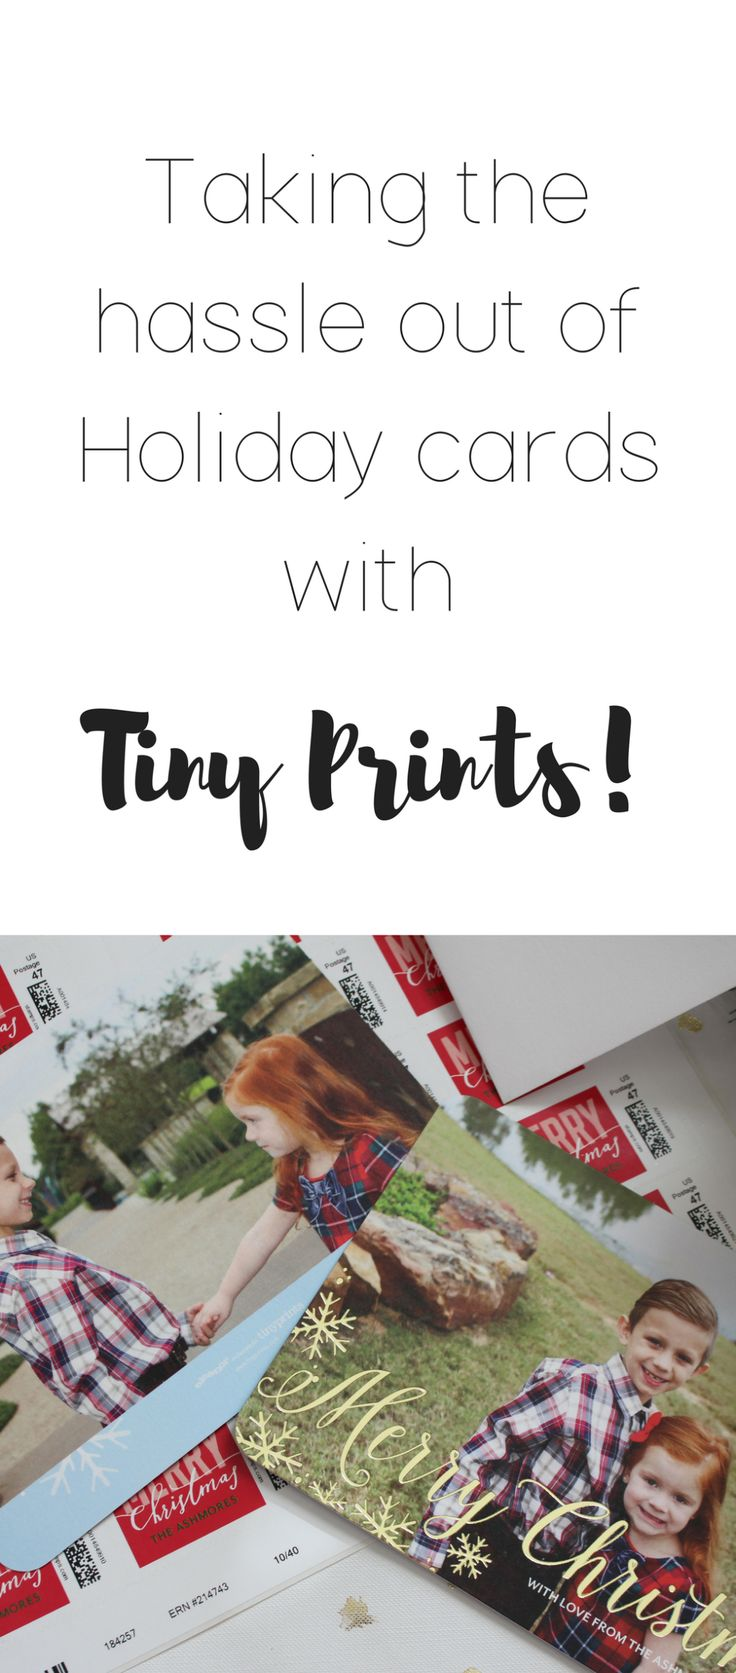 Holiday cards with Tiny Prints!